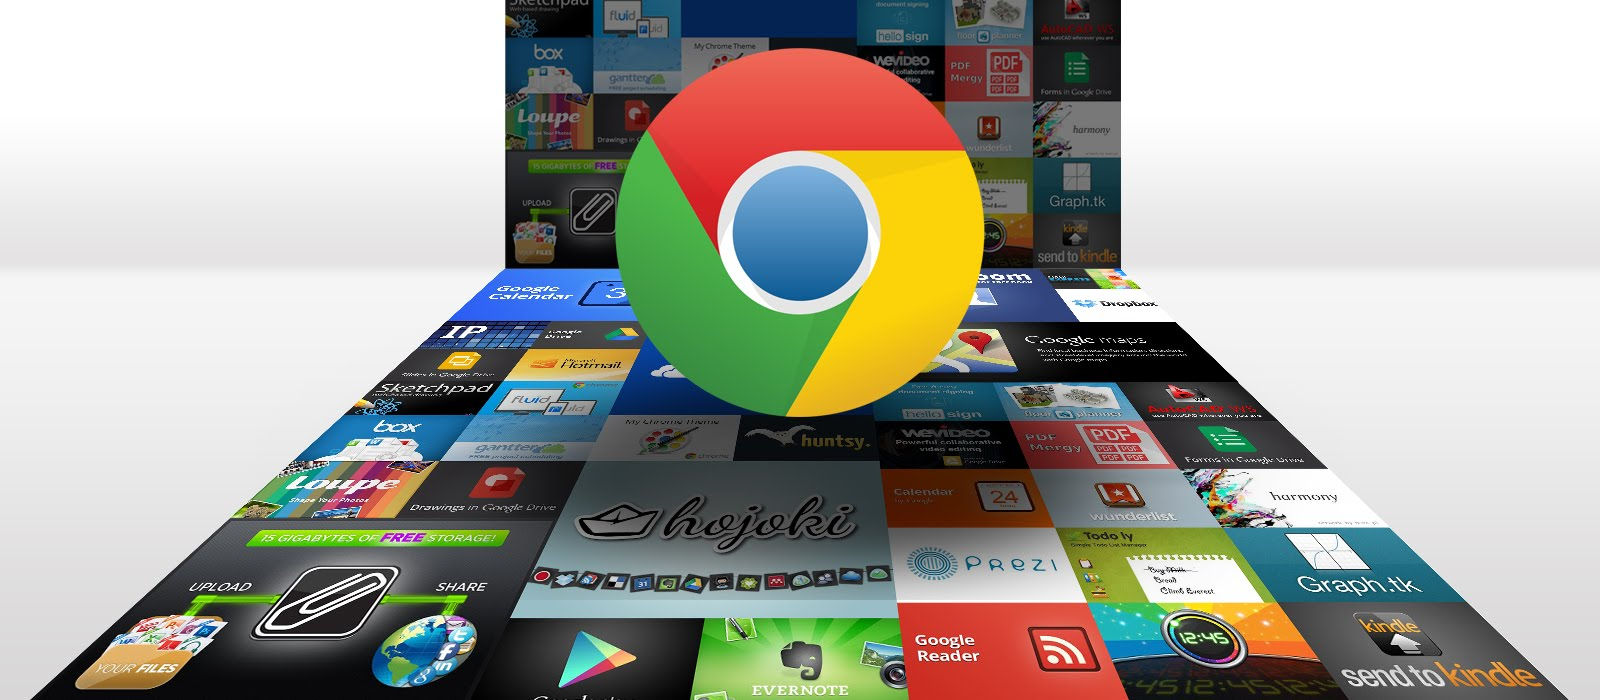 Apps, Plugins and Extensions – All About Chrome | Computer